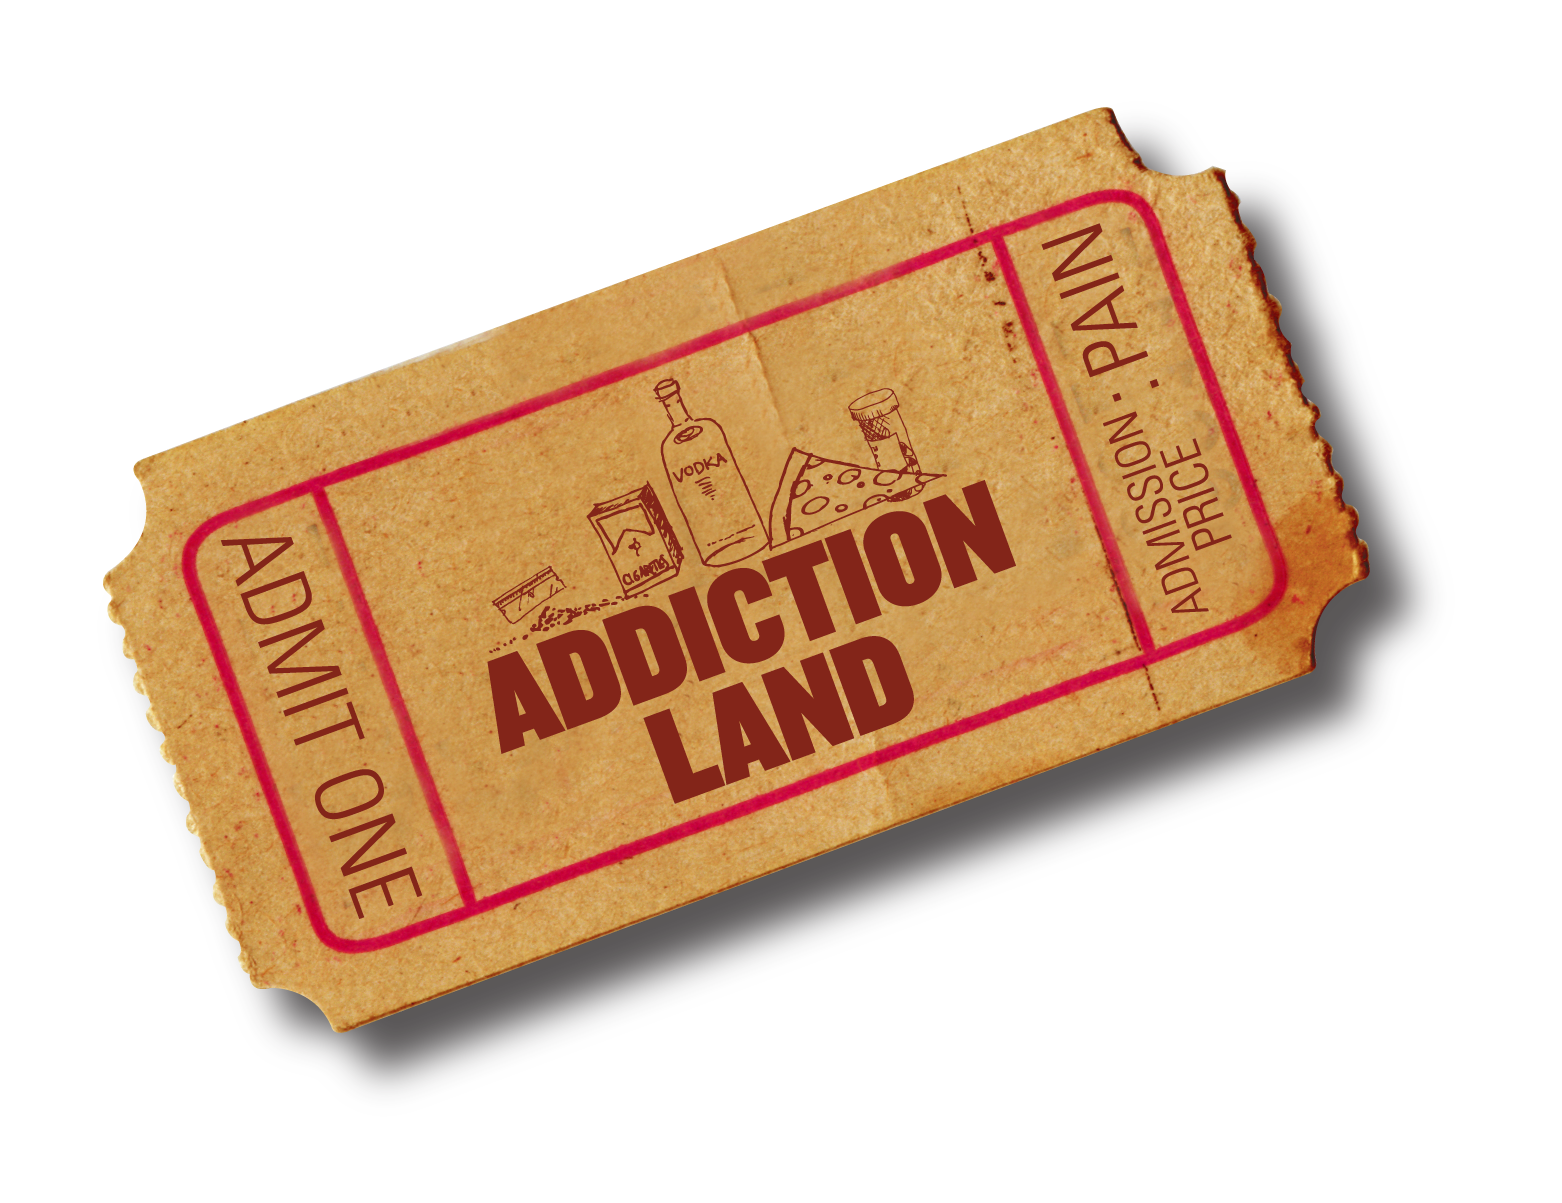 addictionland